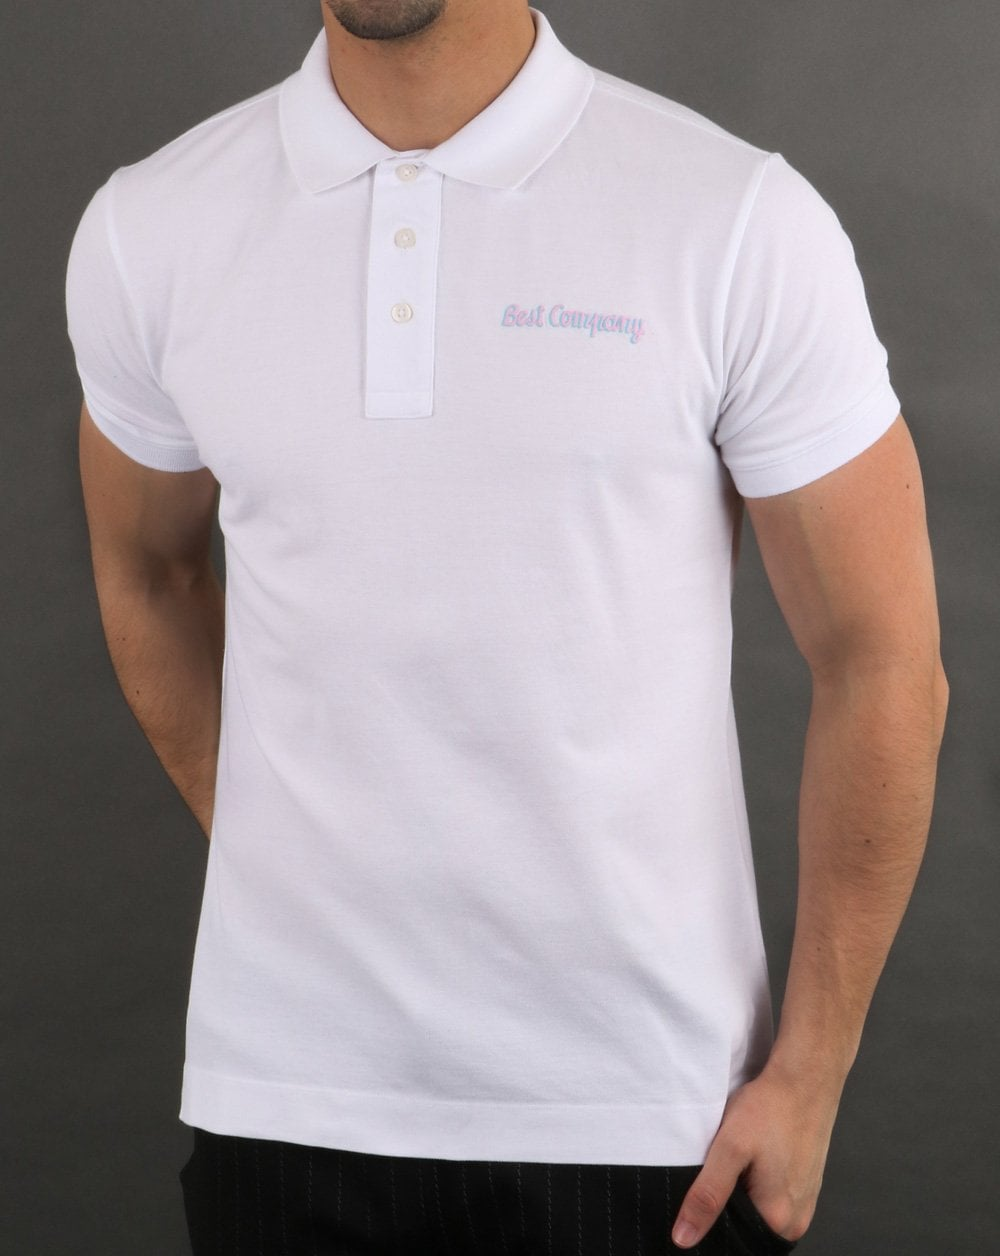 Best Company Pique Polo Shirt White